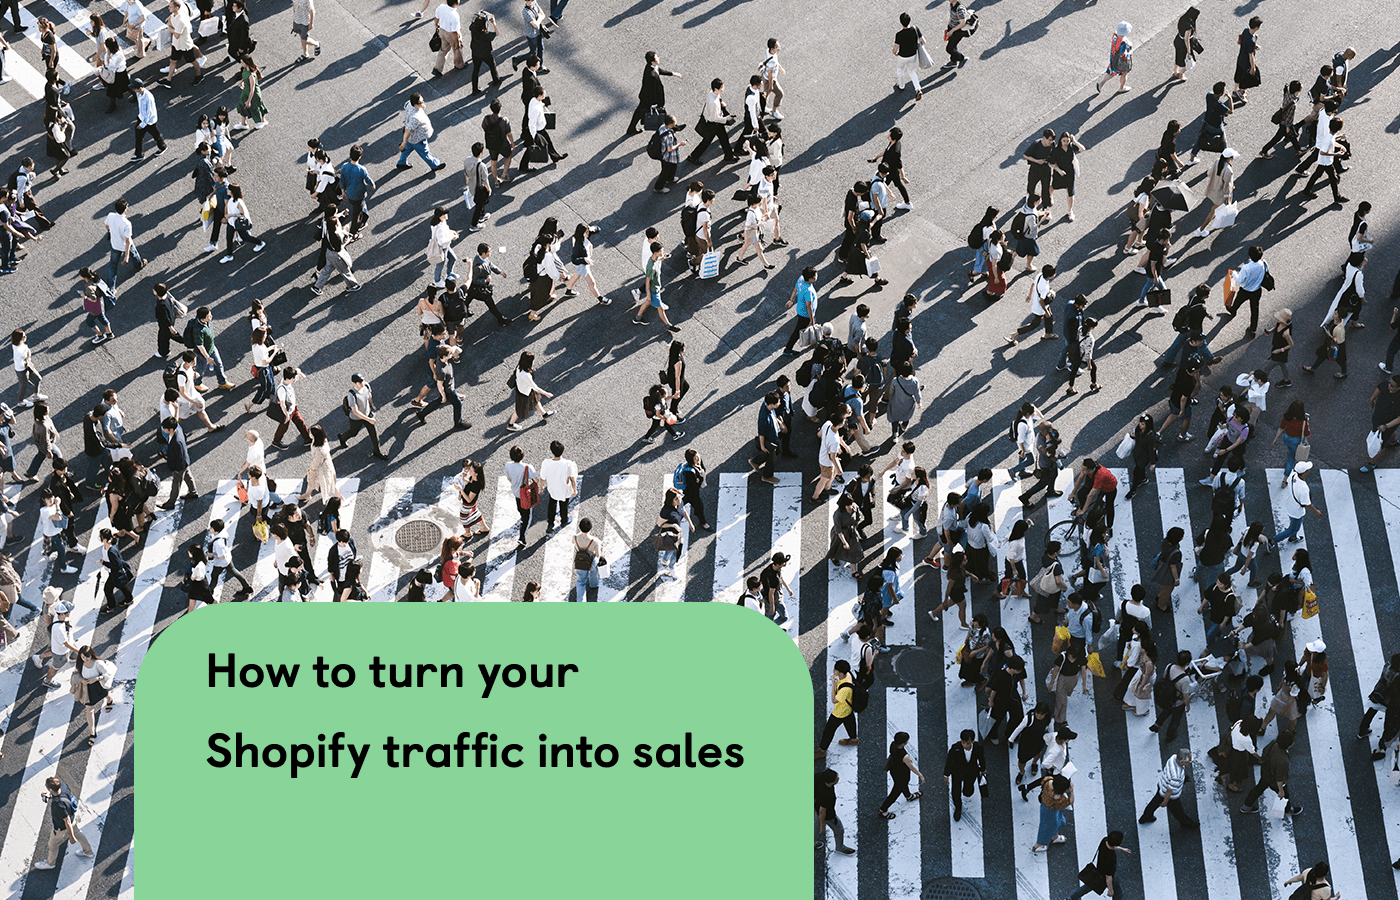 How to turn your Shopify traffic into sales. It's not just about ads.